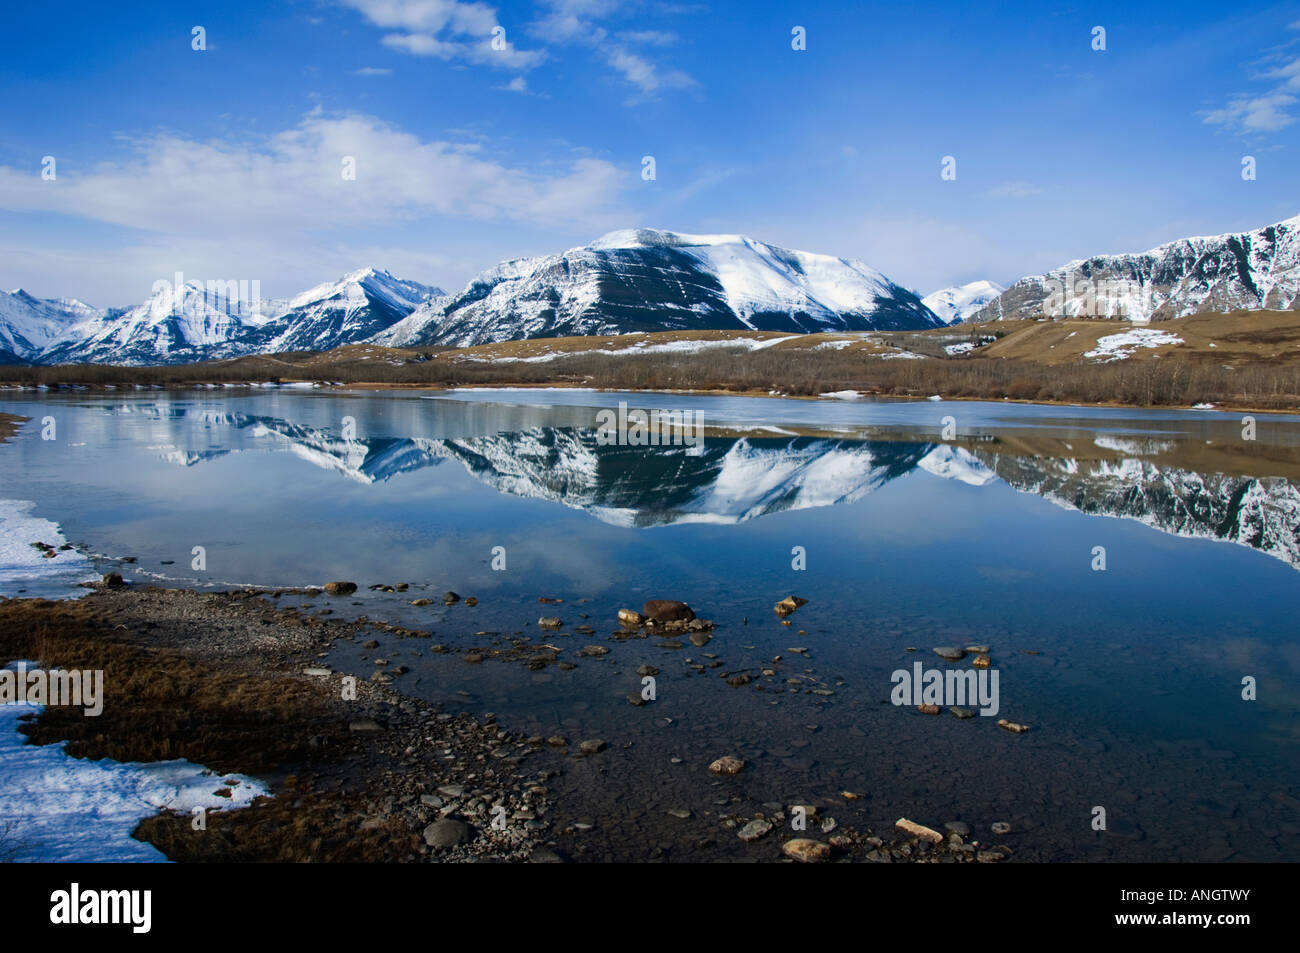 Reflection of area Mountains. Until the snowpac begins to melt the water level is down exposing gravel along the - Stock Image